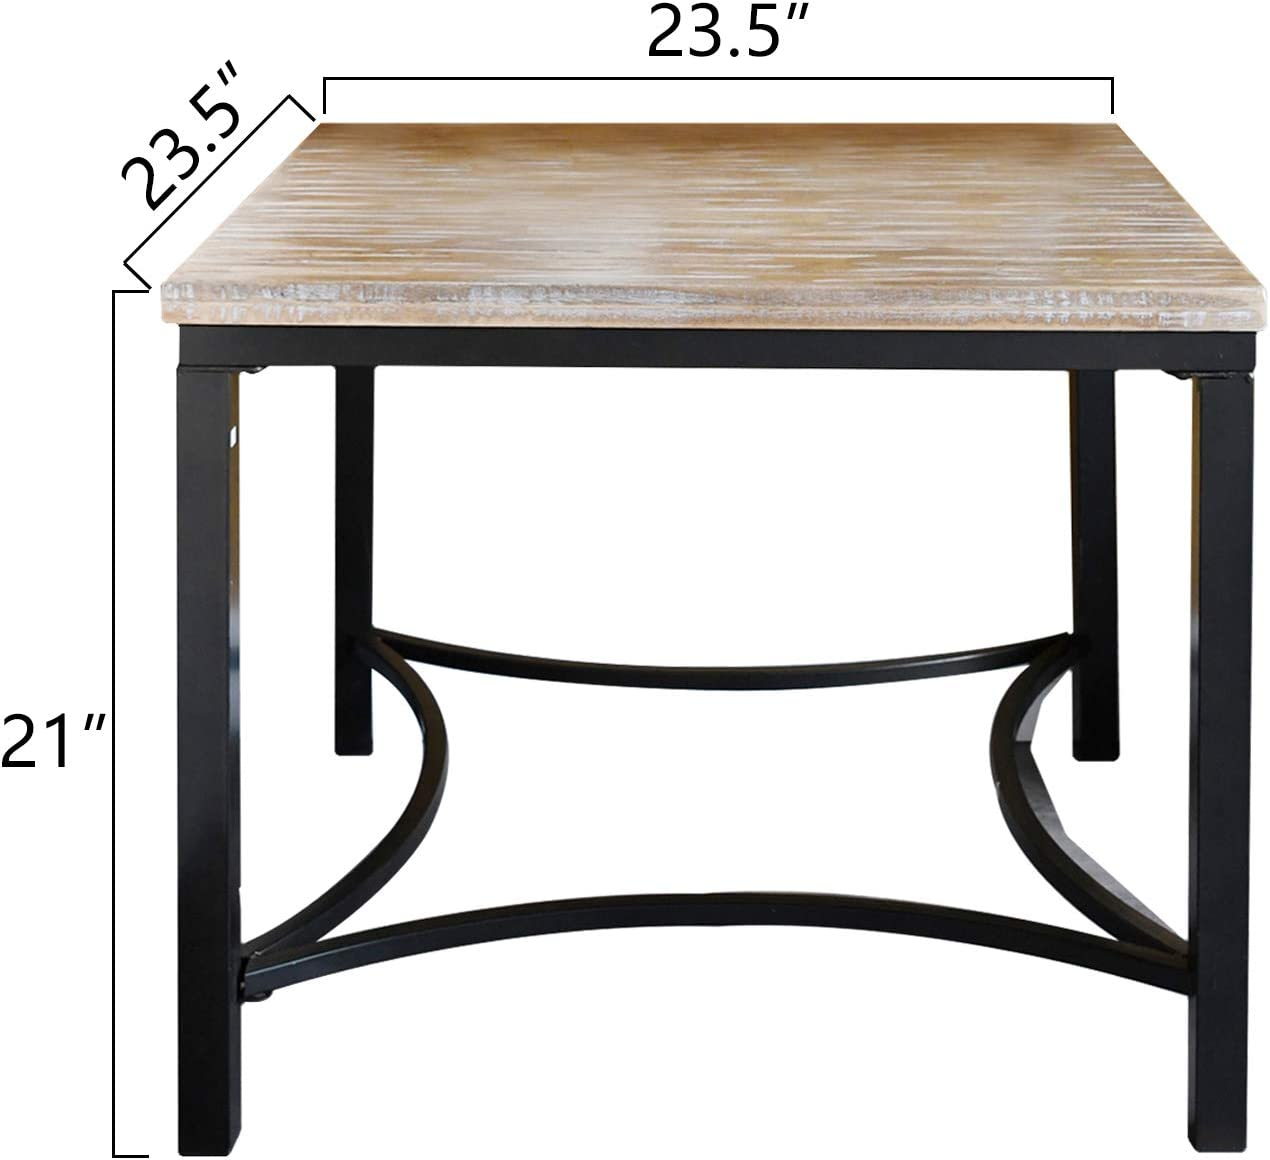 """WELLAND 24"""" Solid Wood Night Stand,Square Rustic Poplar Wood Top Side End Table with Metal Frame for Living Room,Bed Room.: Kitchen & Dining"""